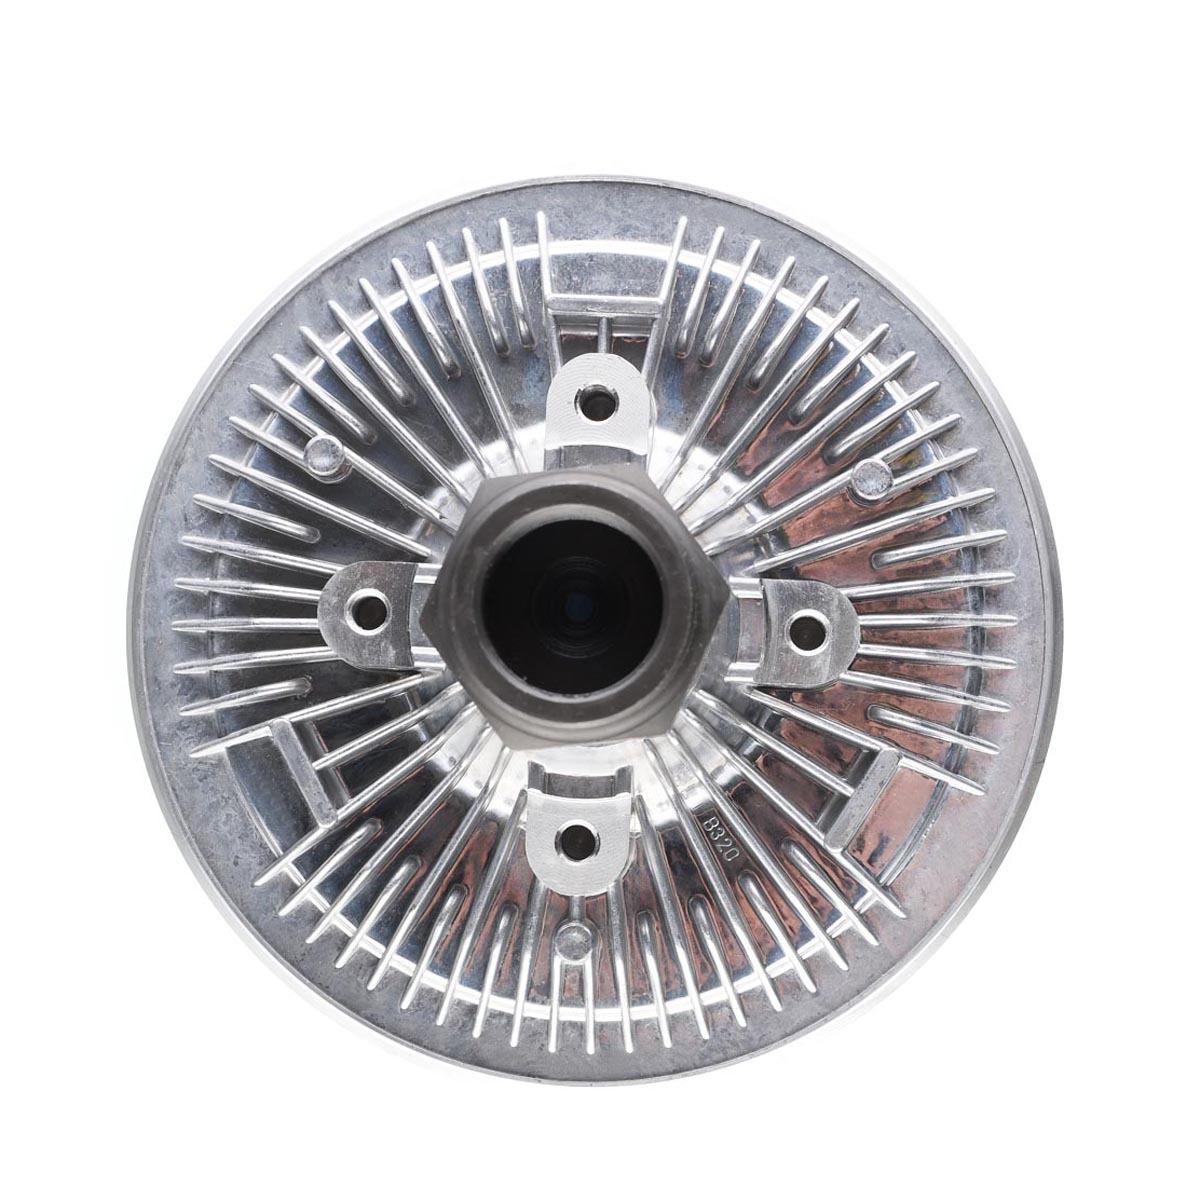 cooling fan clutch for ford excursion f 250 f350 f750 super duty 7 3l turbo diesel 1999 2003 2837 22611 f81z8a616 da f81z8a616da in fans kits from  [ 1200 x 1200 Pixel ]